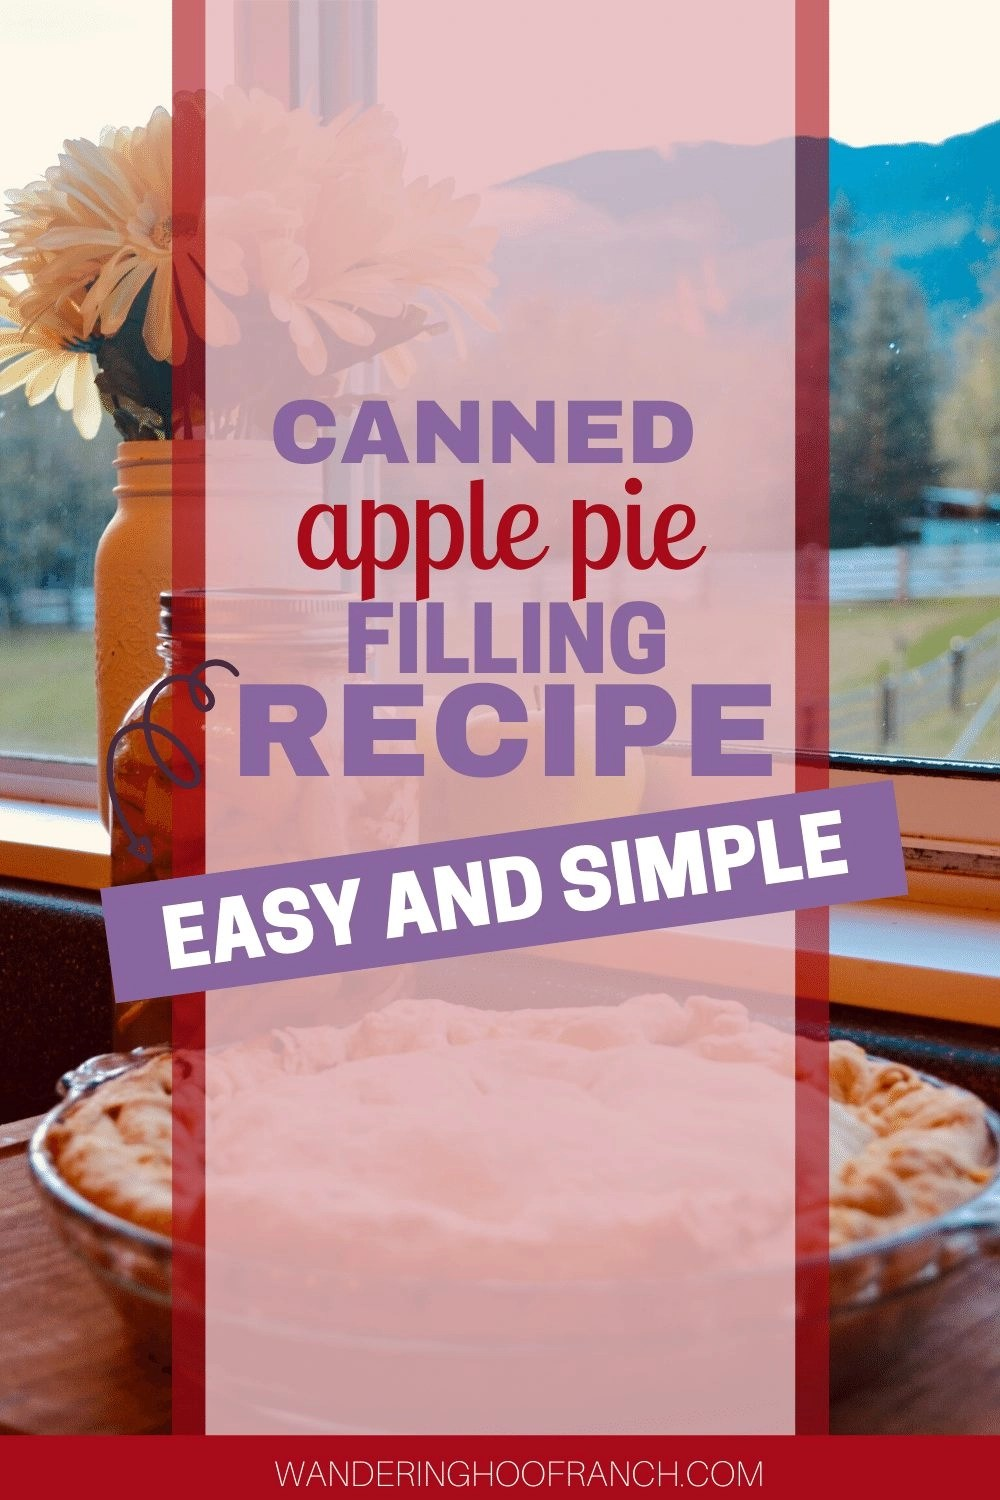 CANNED APPLE PIE FILLING RECIPE PIN EASY AND SIMPLE